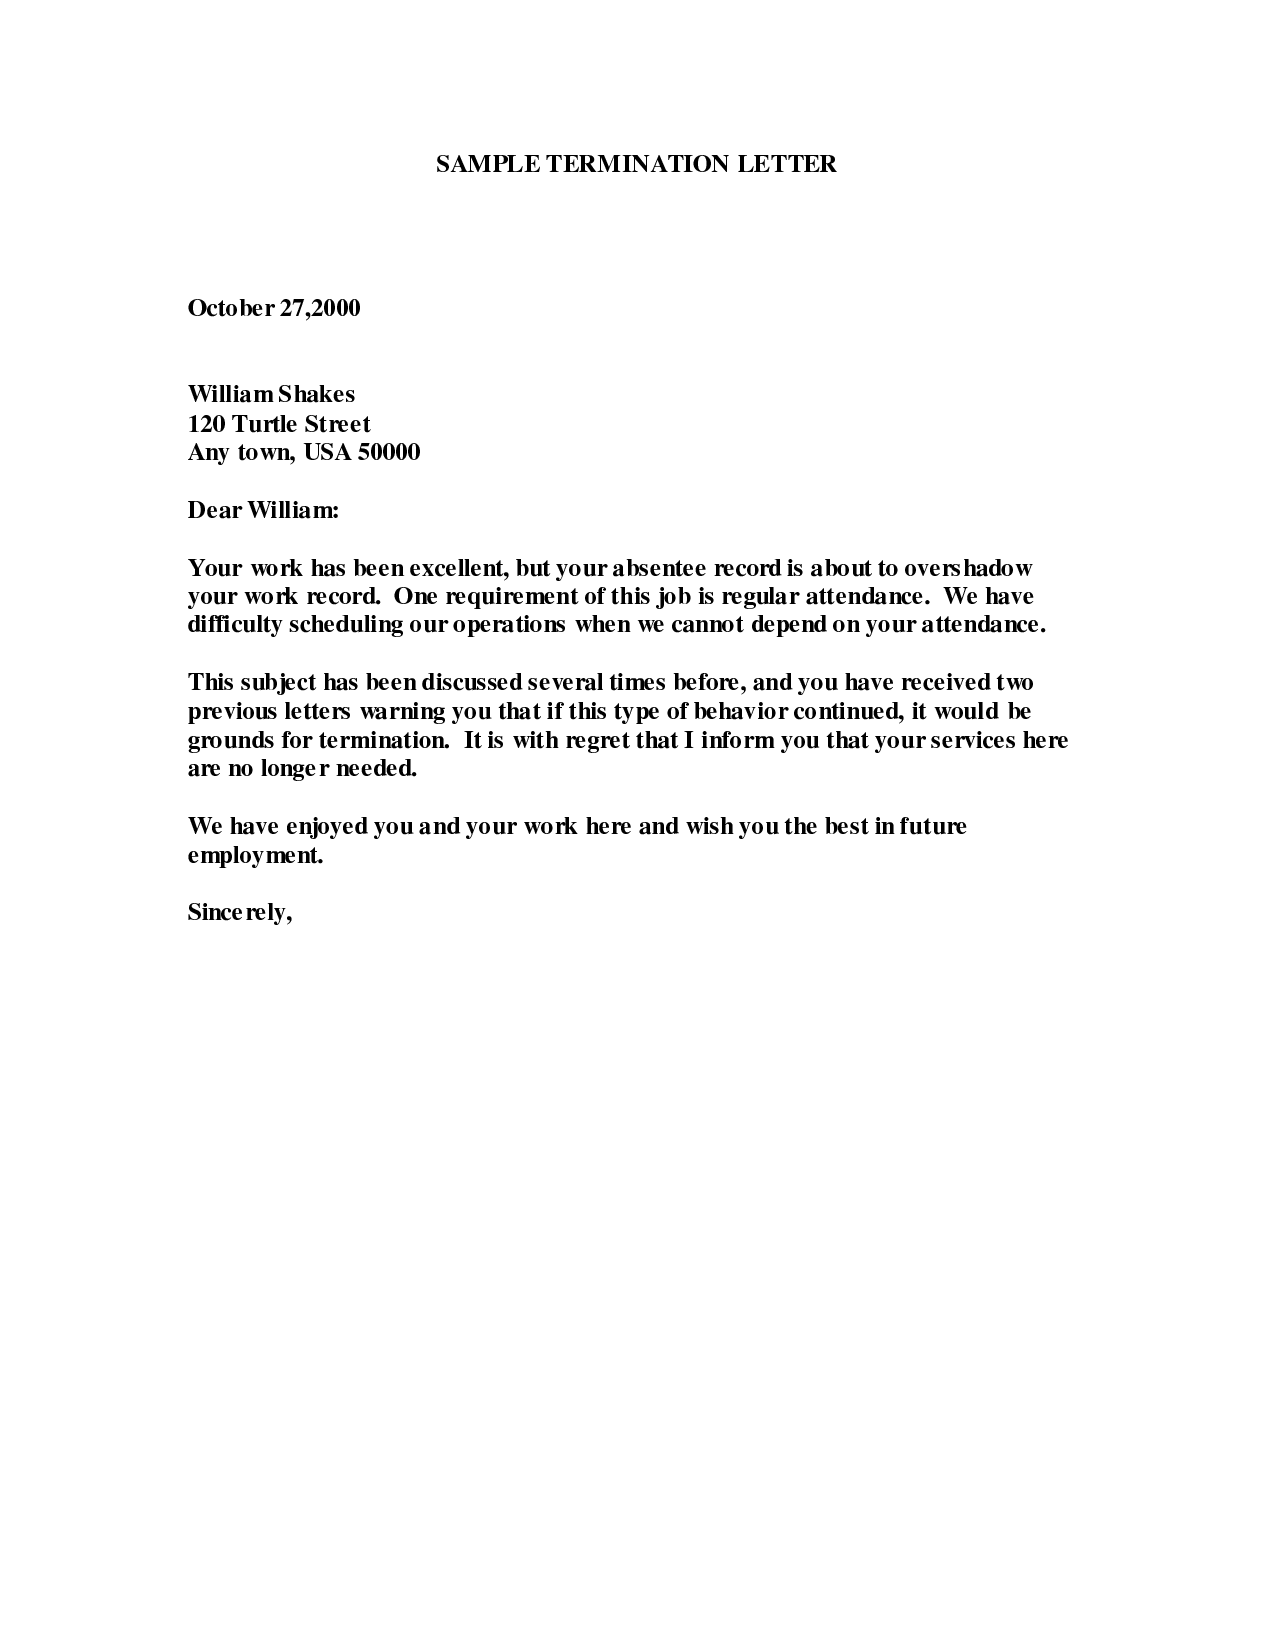 termination letter to employee sample apology letter  termination